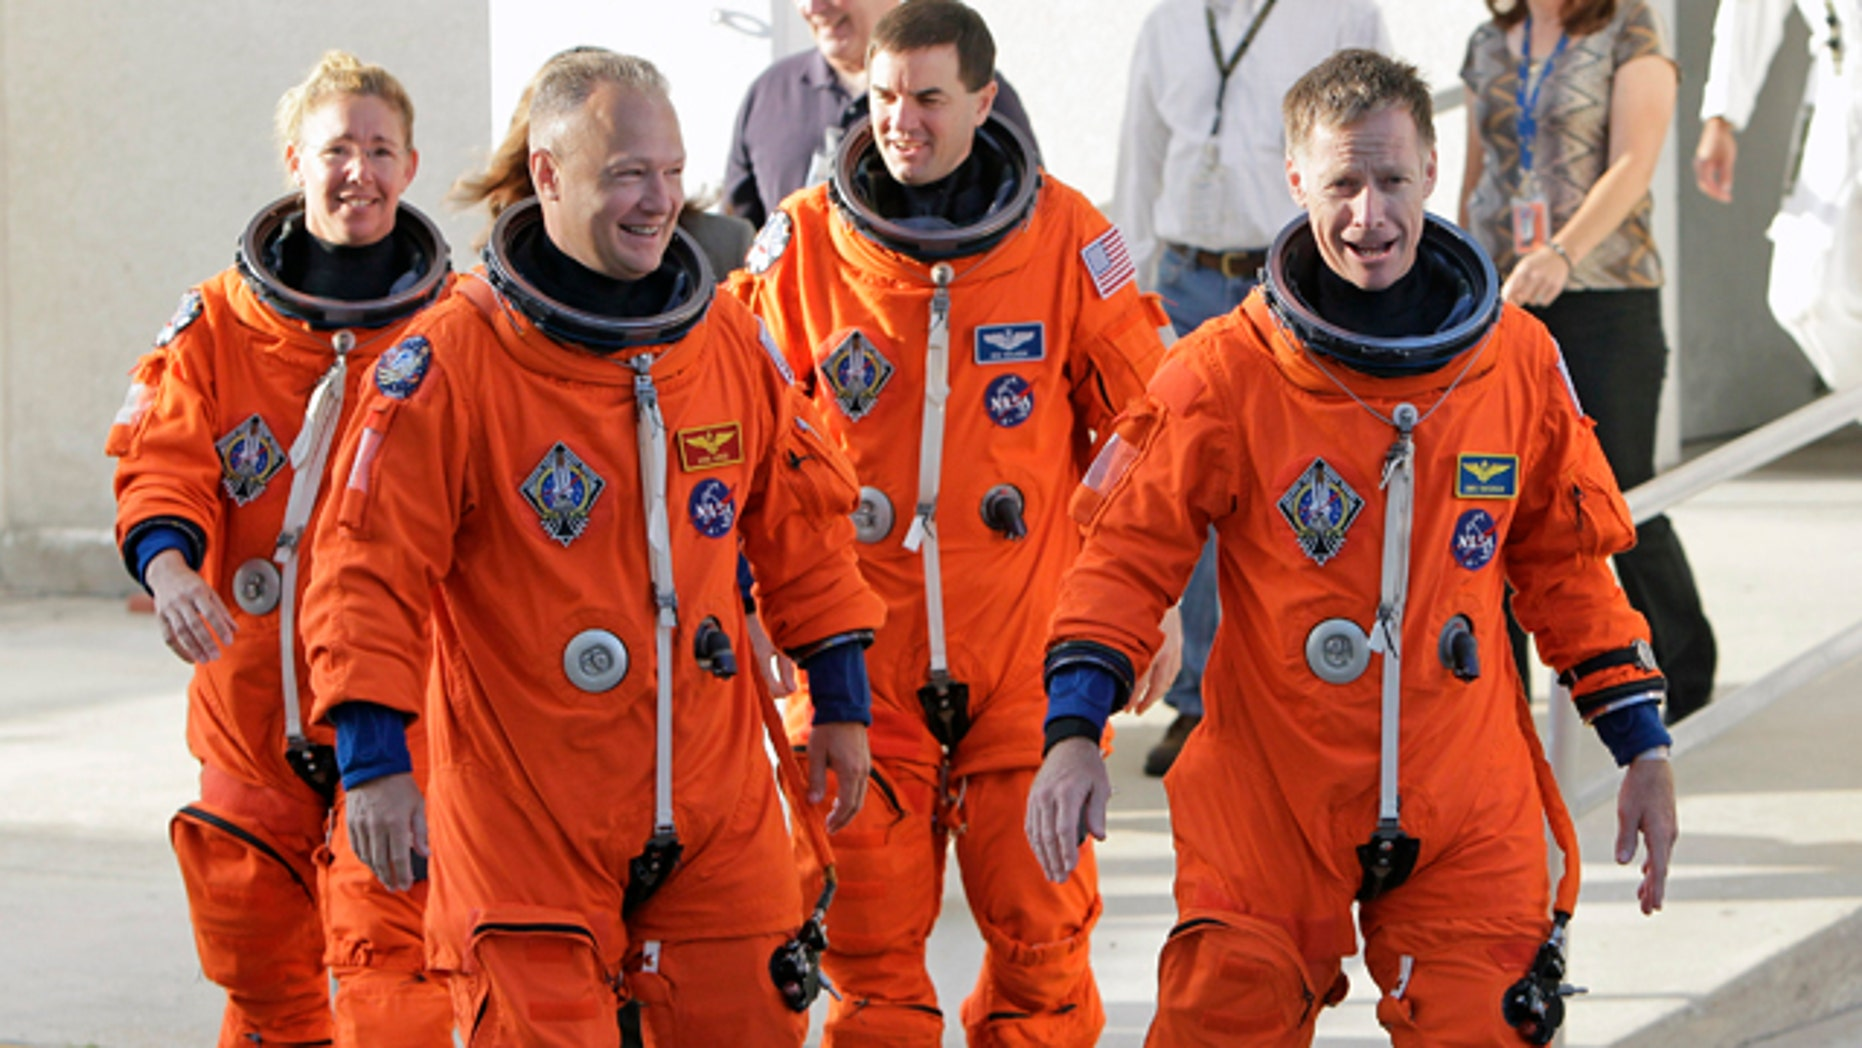 June 23: The crew of space shuttle Atlantis, from left, mission specialist Sandy Magnus, pilot Doug Hurley, mission specialist Rex Walhiem and commander Chris Ferguson, leave the Operations and Checkout Building on their way to board the shuttle for their final day of training during the Terminal Countdown Demonstration Test at the Kennedy Space Center in Cape Canaveral, FL.